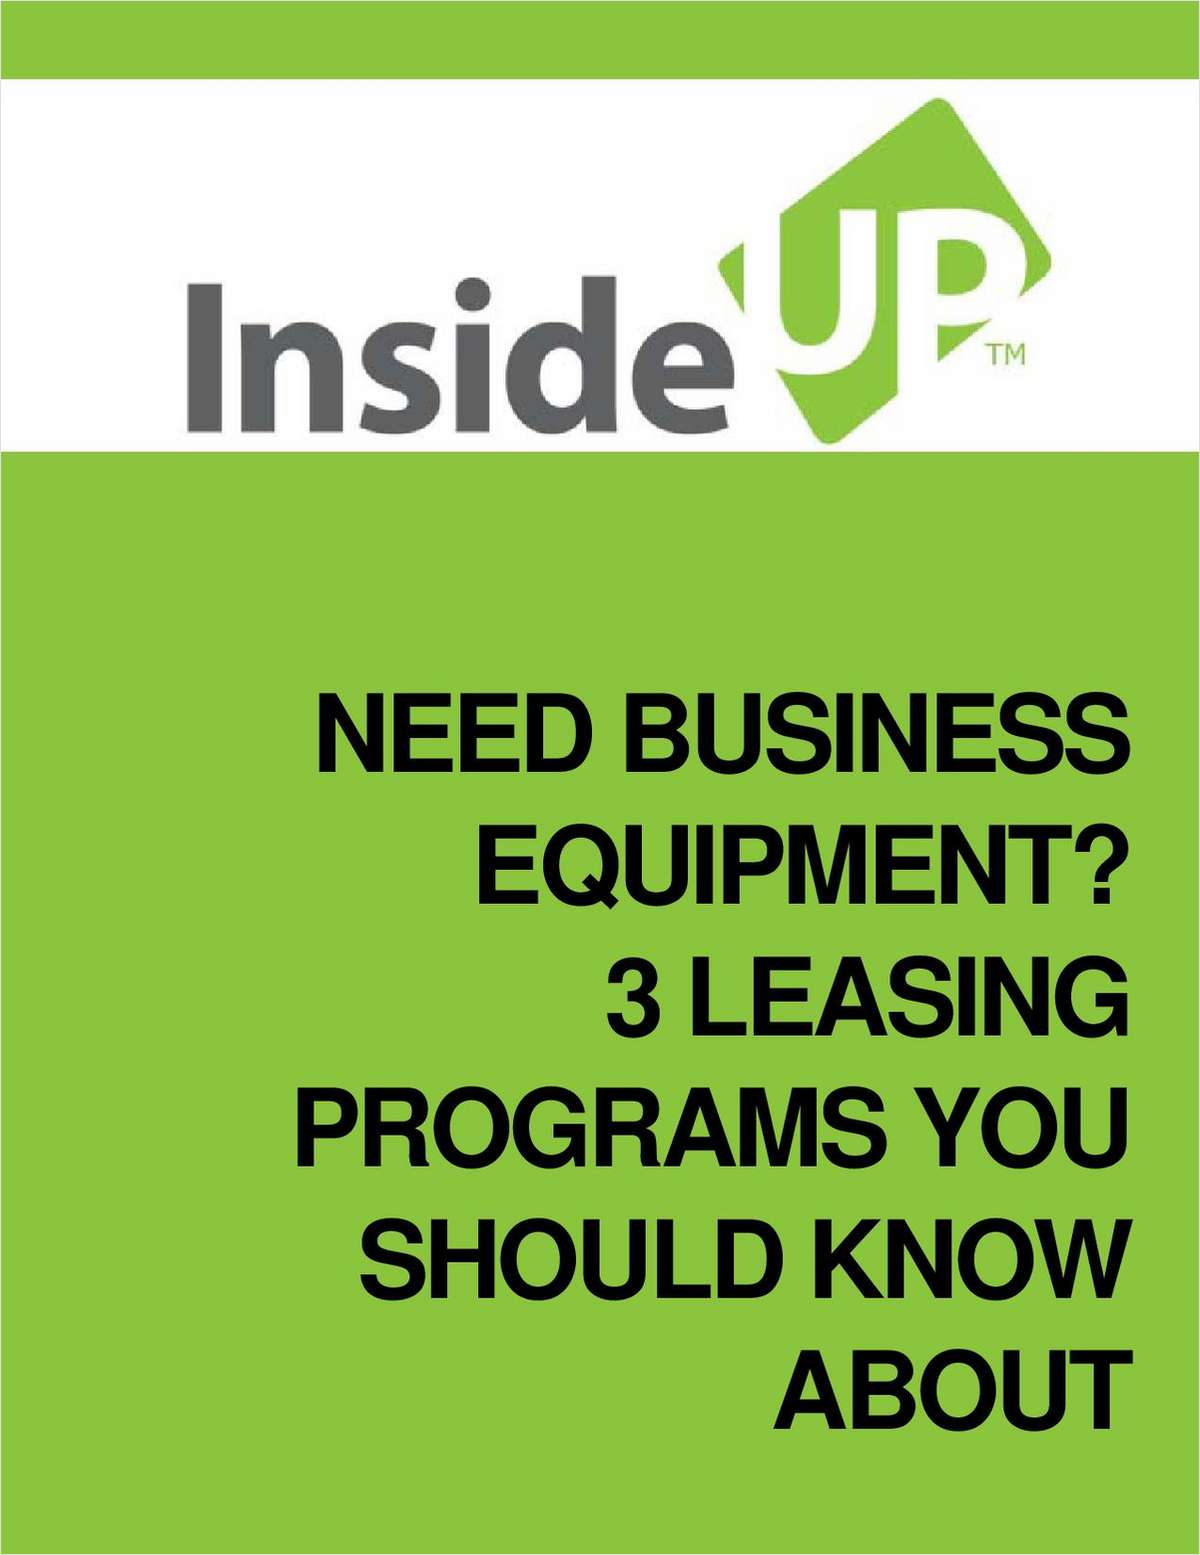 Need Business Equipment? 3 Leasing Programs You Should Know About